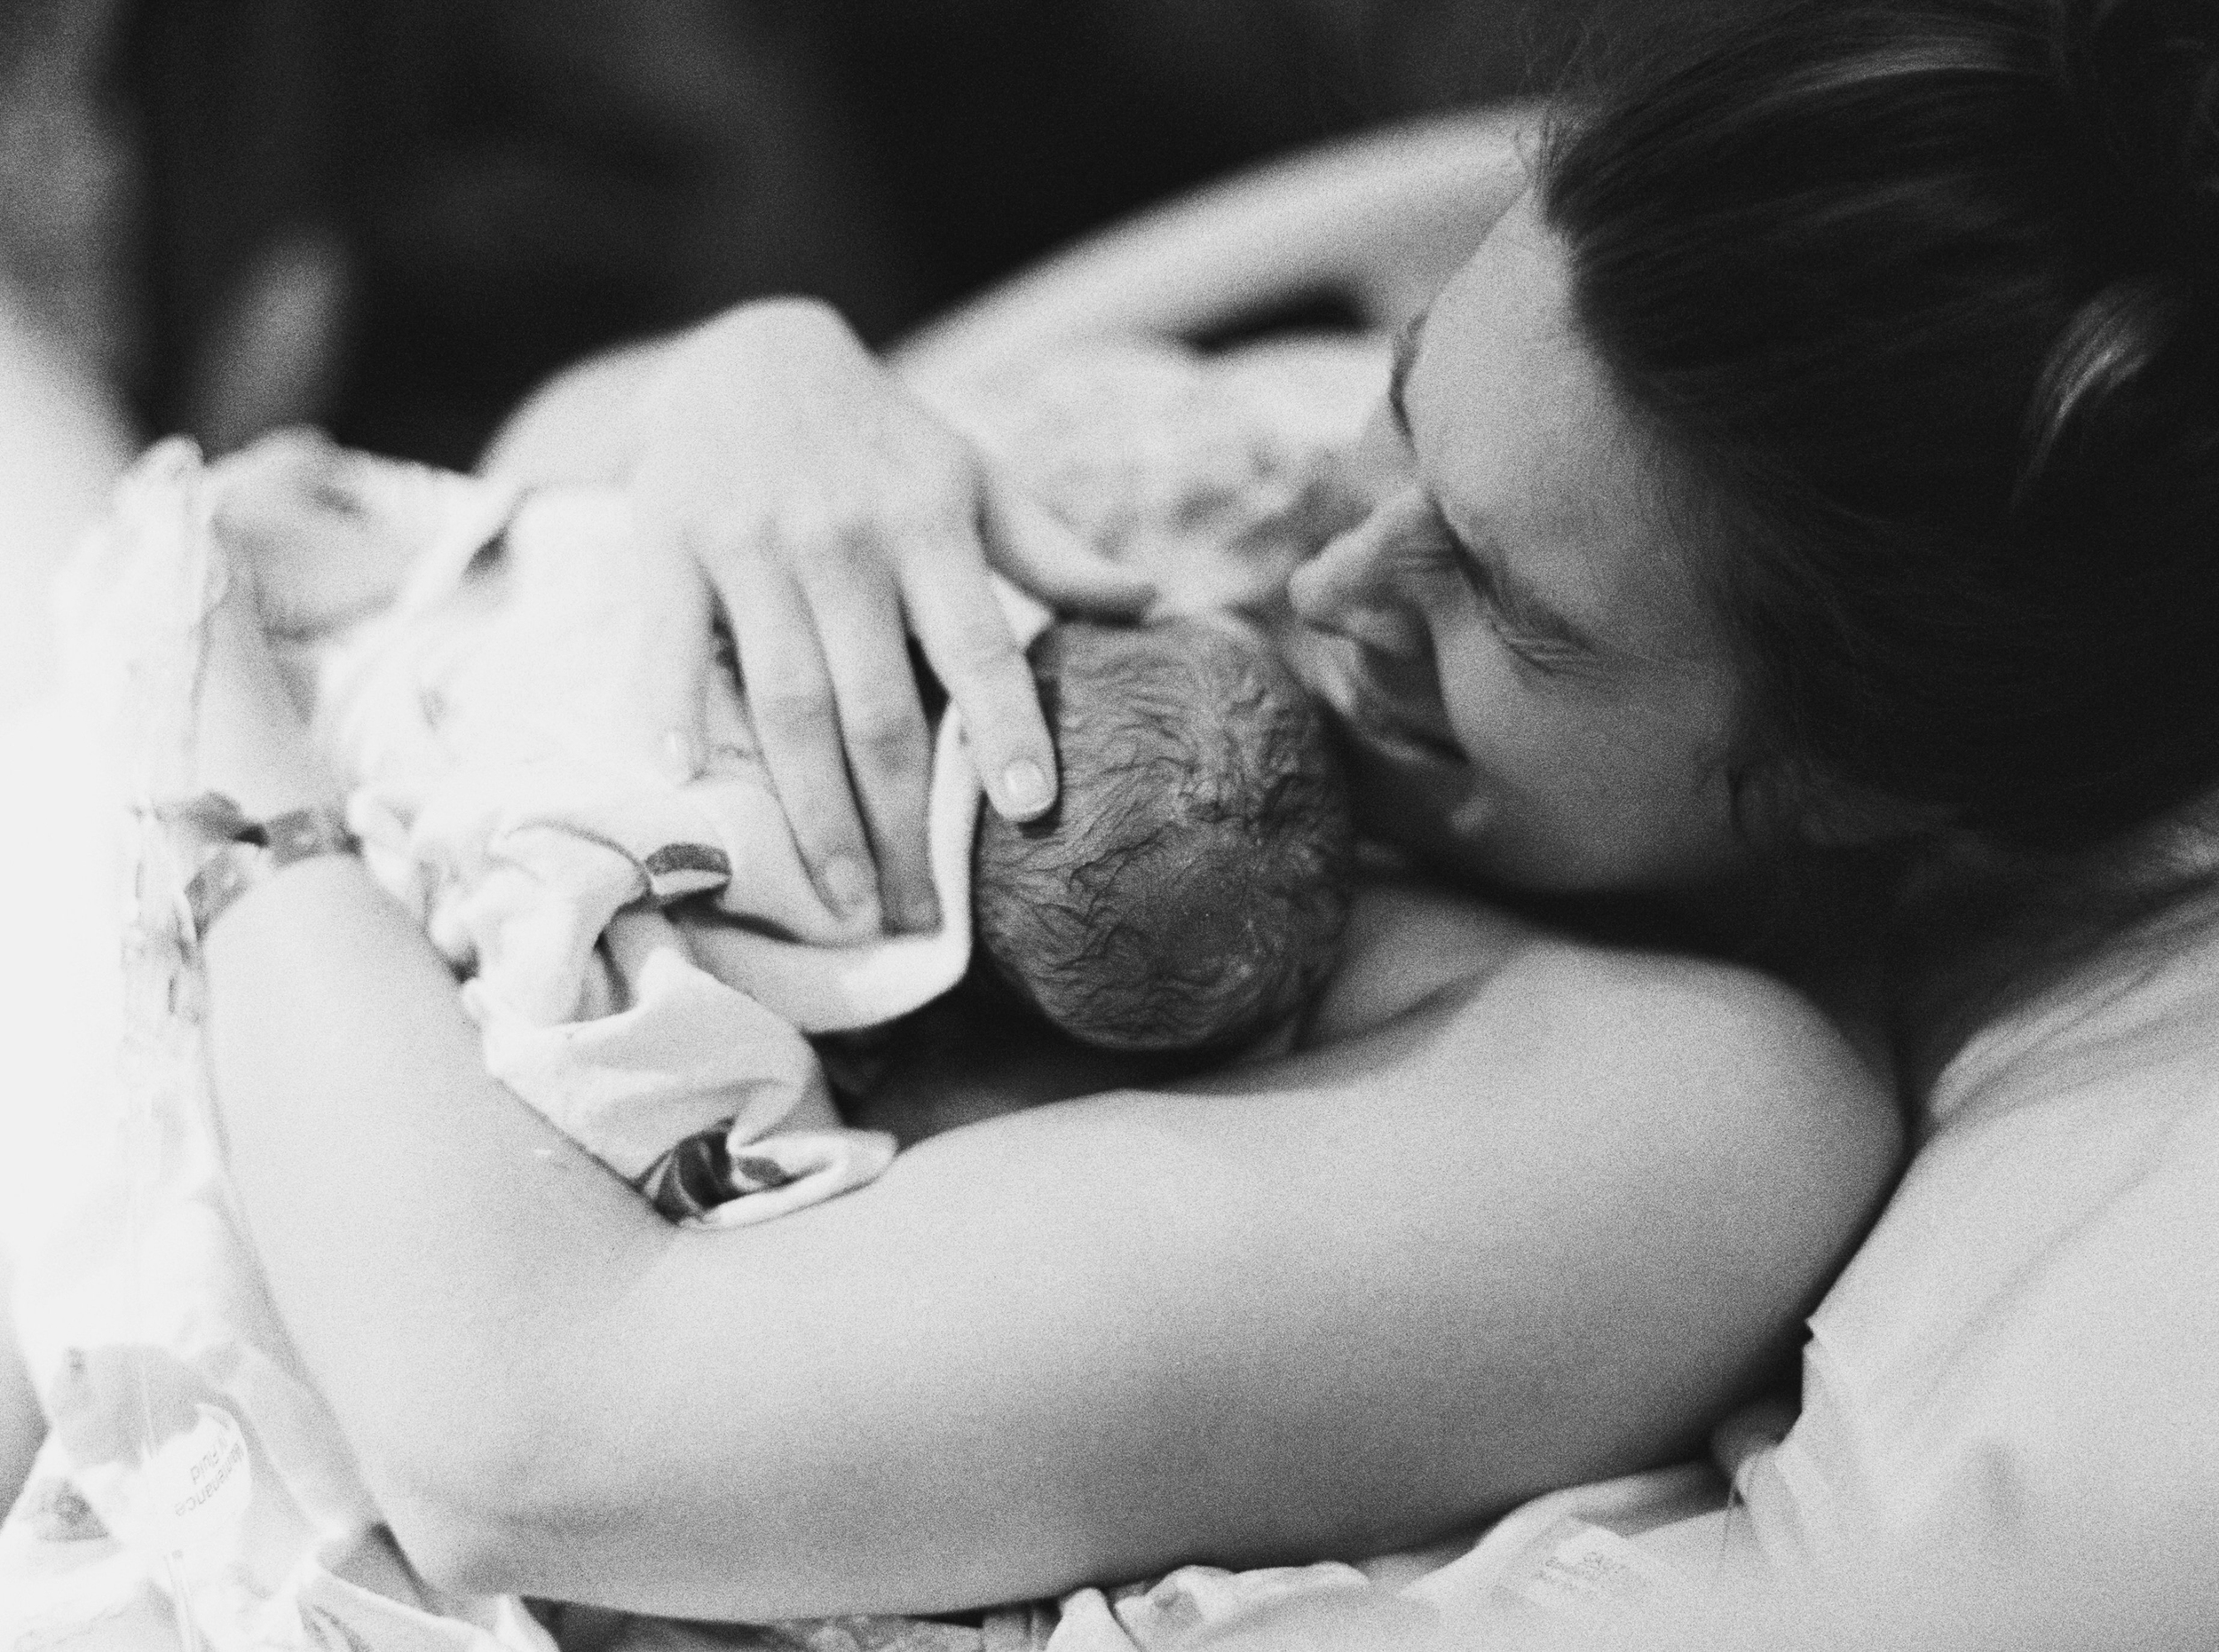 Destination Wedding Photographer Lexia Frank is a portland oregon fine art film photographer. Marla Cyree photographed the birth of her daughter on film